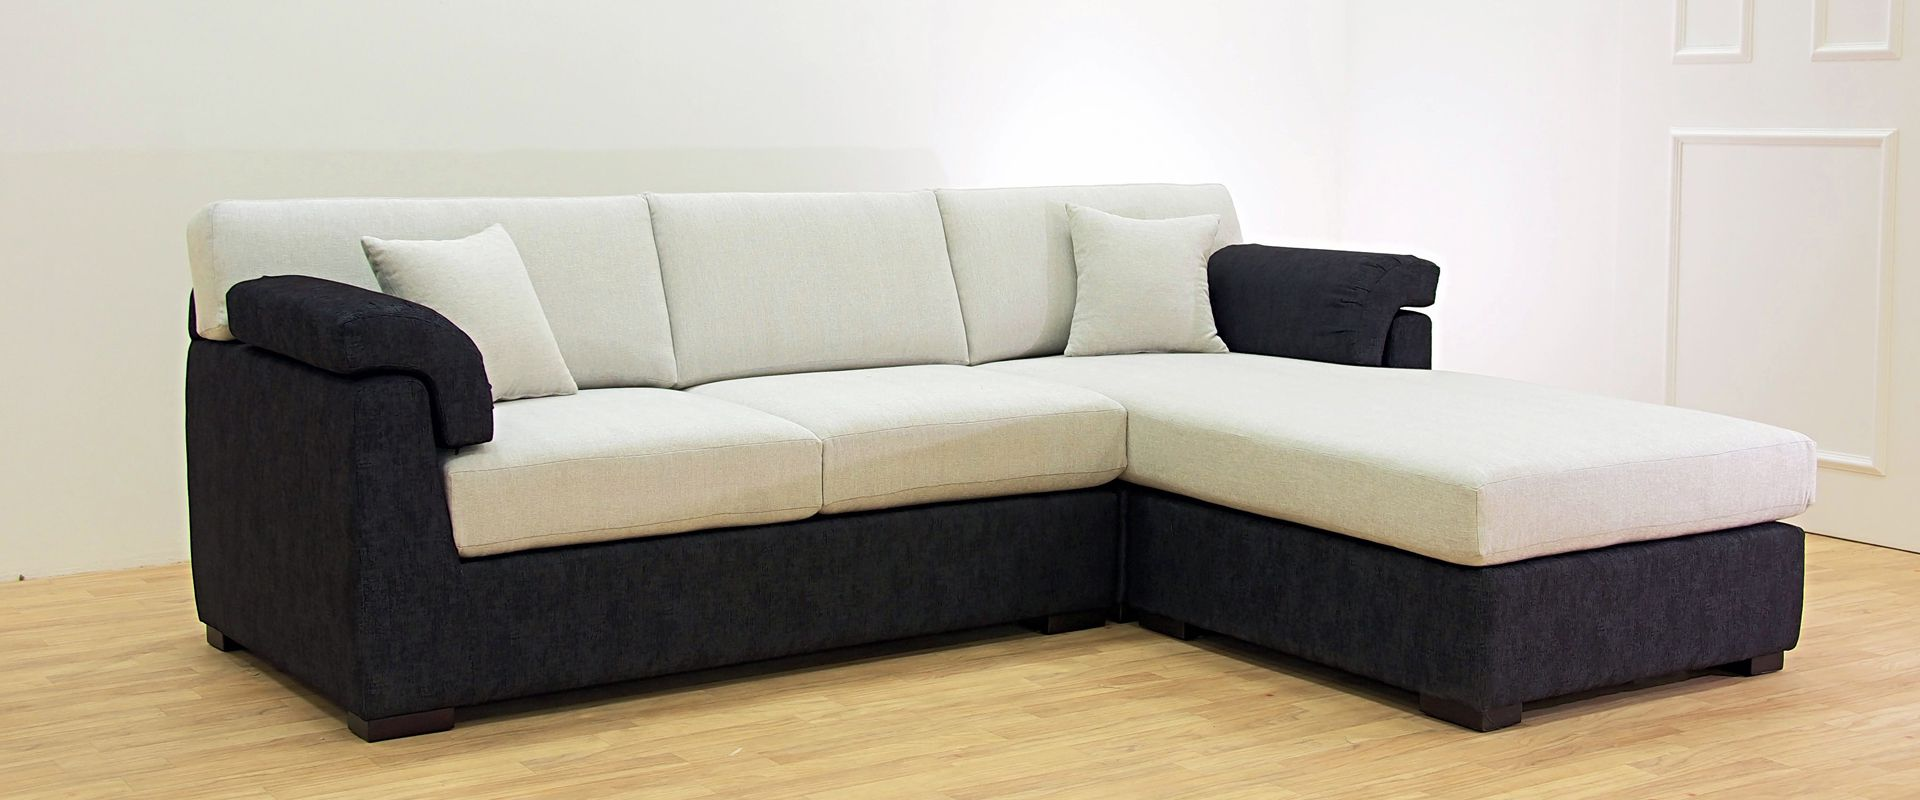 Sofa bed suppliers uae Home furniture online uae